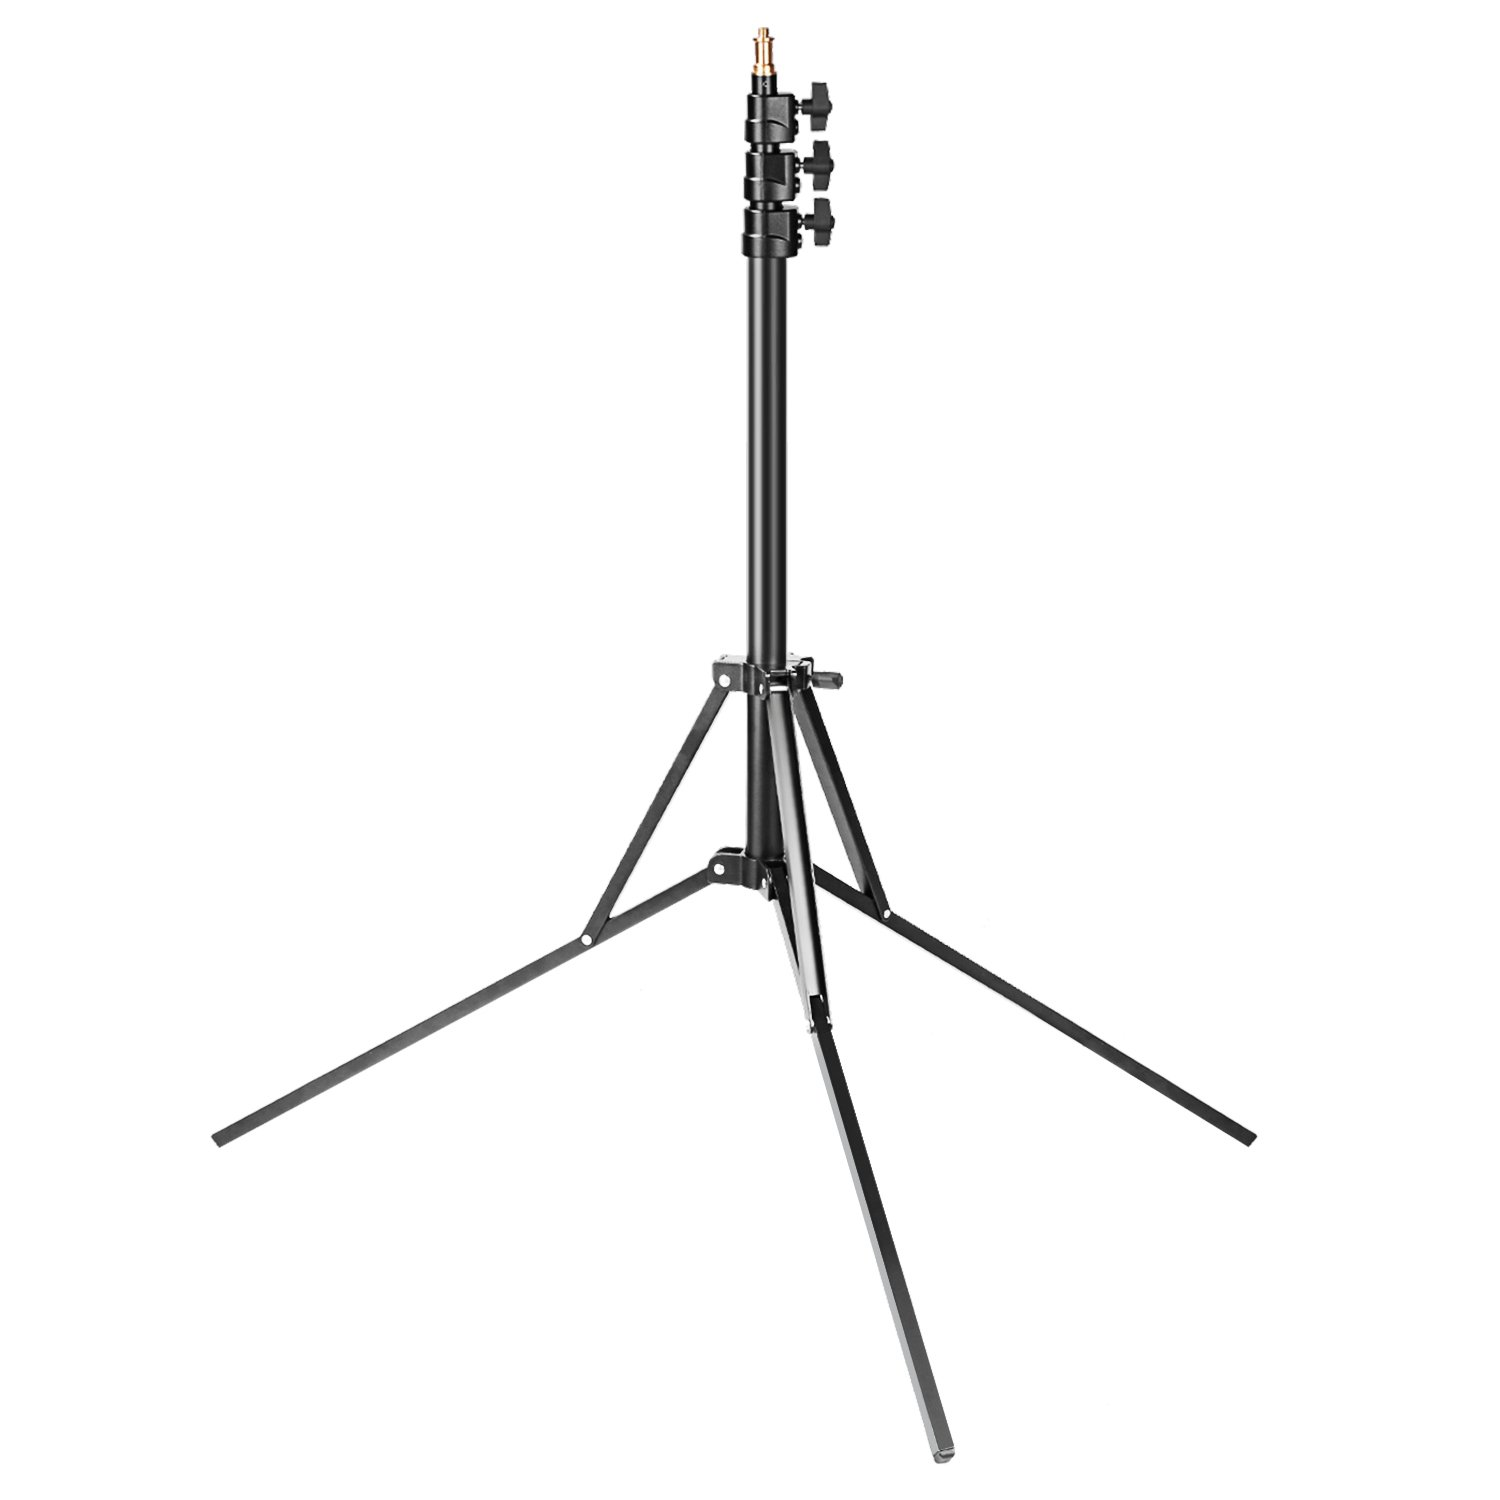 Neewer 6.9 feet Compact Portable Photography Light Stand, Reverse Folding Leg Stand for Ring Light, Softbox, Strobe Light, Reflector and Other Equipment, Heavy Duty Aluminum Alloy